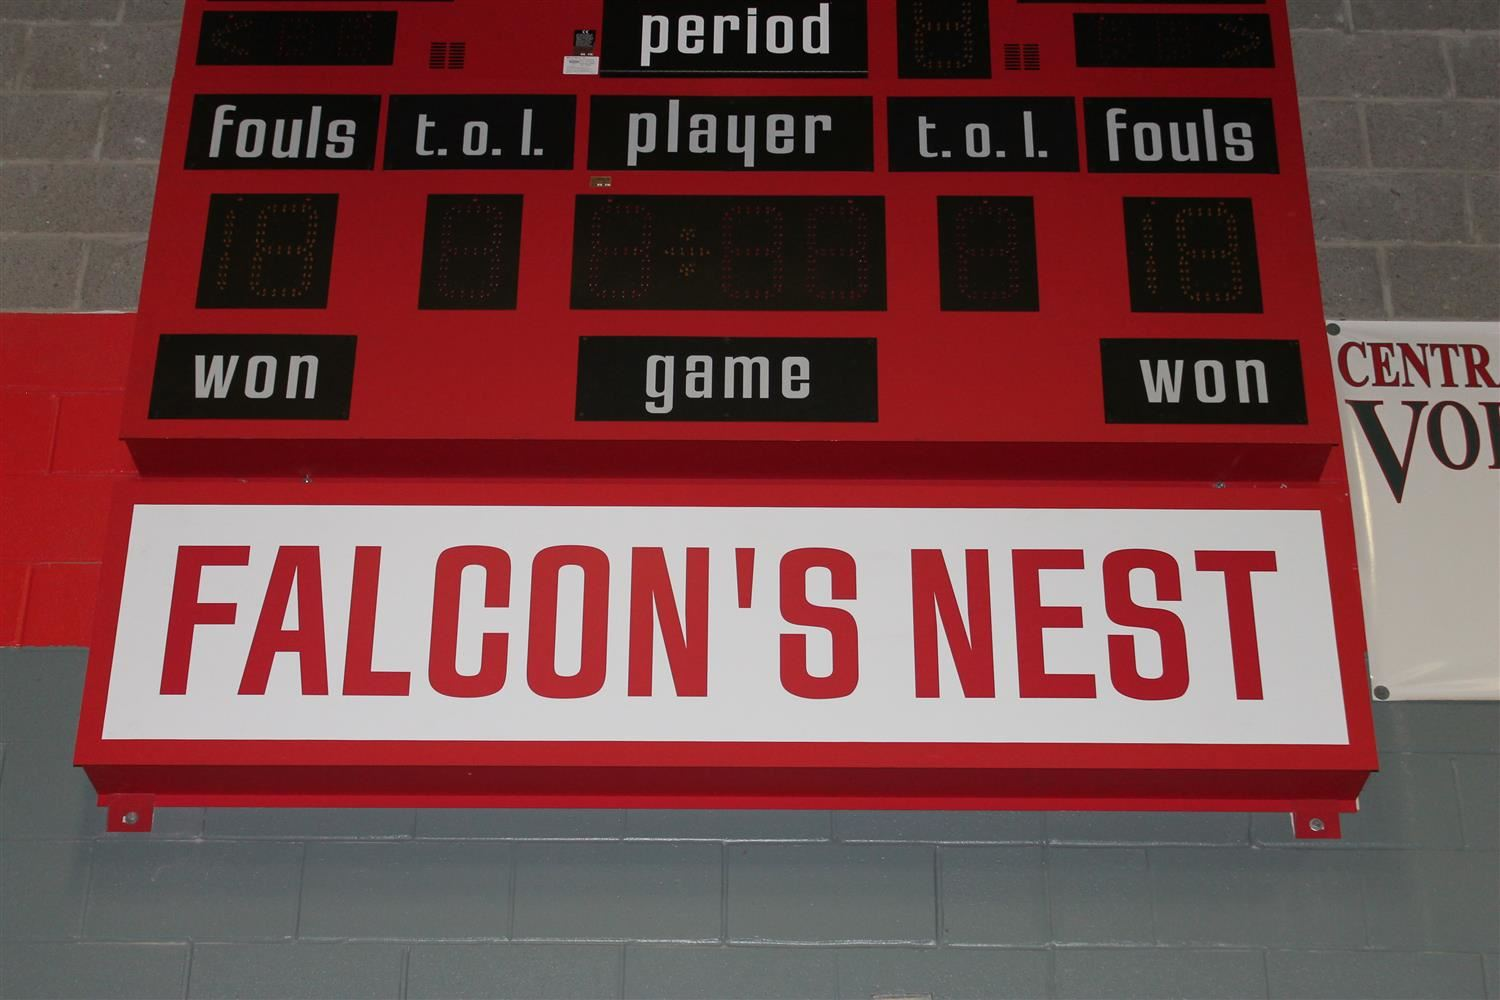 The Falcon's Nest Scoreboard